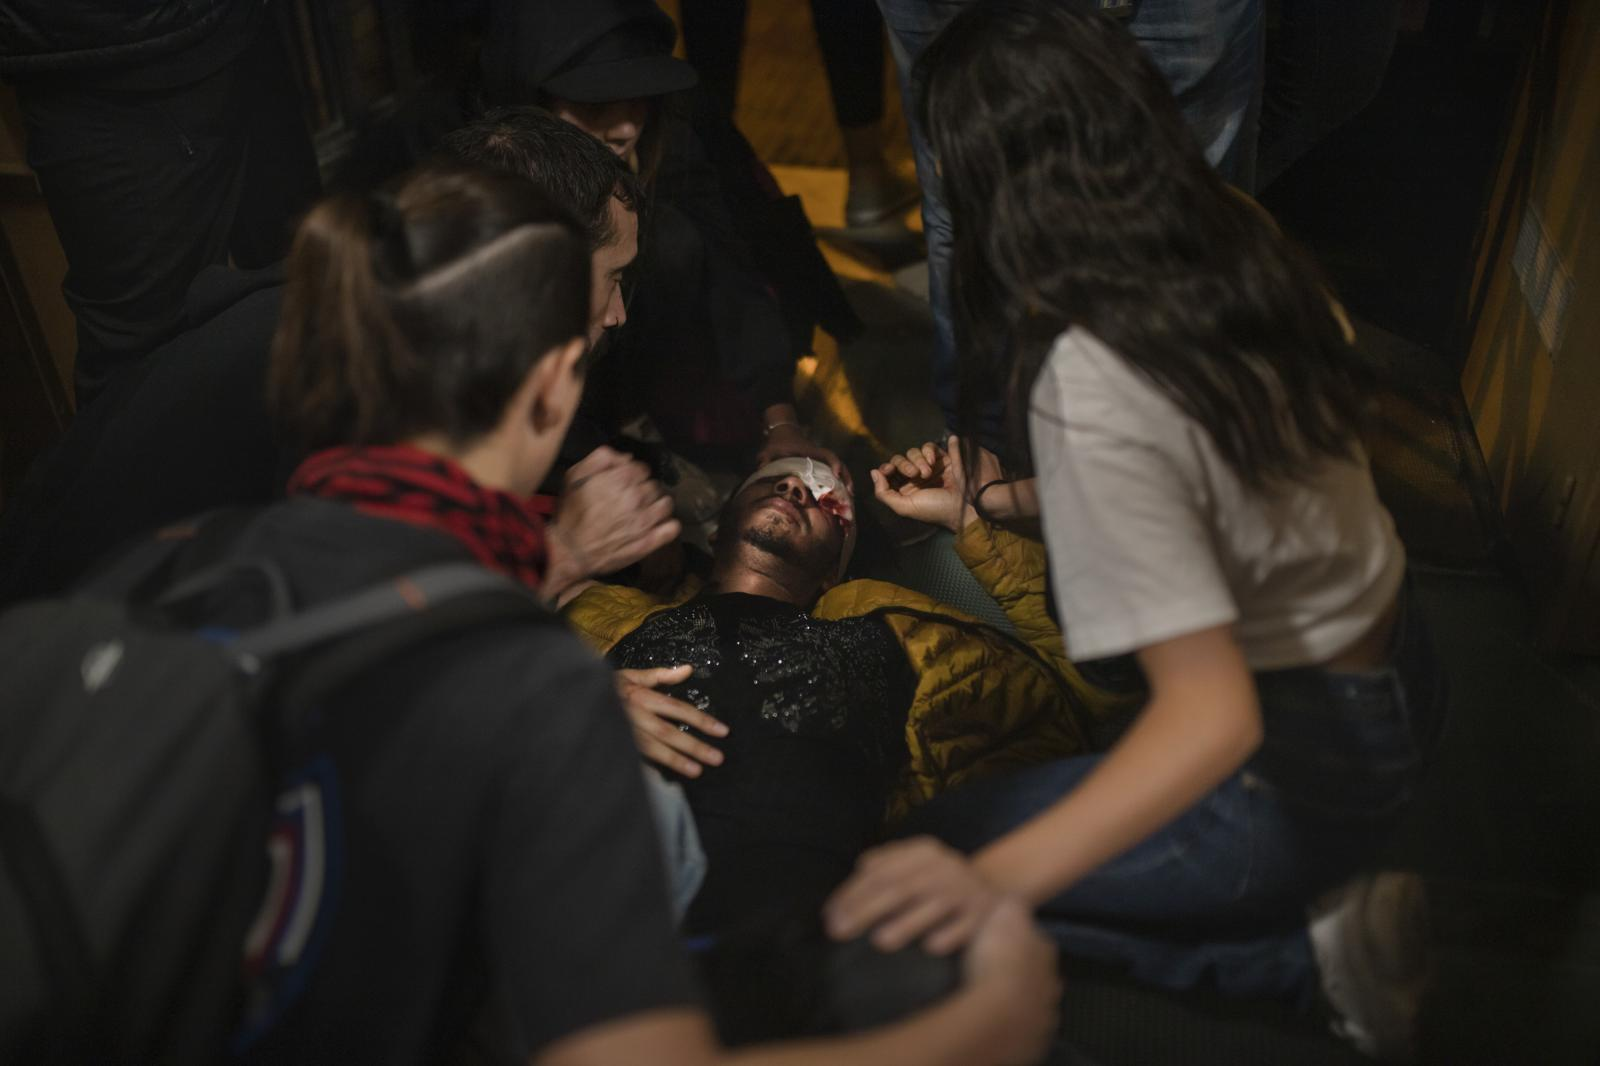 """A man is on the floor after being injured by the police. During protests in Catalonia, four people have lost sight in one eye, another lost testicular mass. Rights group Amnesty International called on """"all authorities"""" to refrain from contributing to the escalation of tensions in the streets and to respond """"proportionally"""" to outbreaks of violence. In 2014 a ban on the use of rubber bullets as an anti-riot weapon was imposed on the Catalan police force following a high profile campaign led by victims who had lost vision. Then armed guards of Mossos de Esquadra only used """"foam"""" bullet to control the altercations recorded in the Catalan streets, while National police and Guardia Civile used rubber bullets too because of """"a scale of order"""" and the rules that allow using this riot gear """"are above"""" what is established in the Catalan law. (October 18,2019. Barcelona, Spain)"""